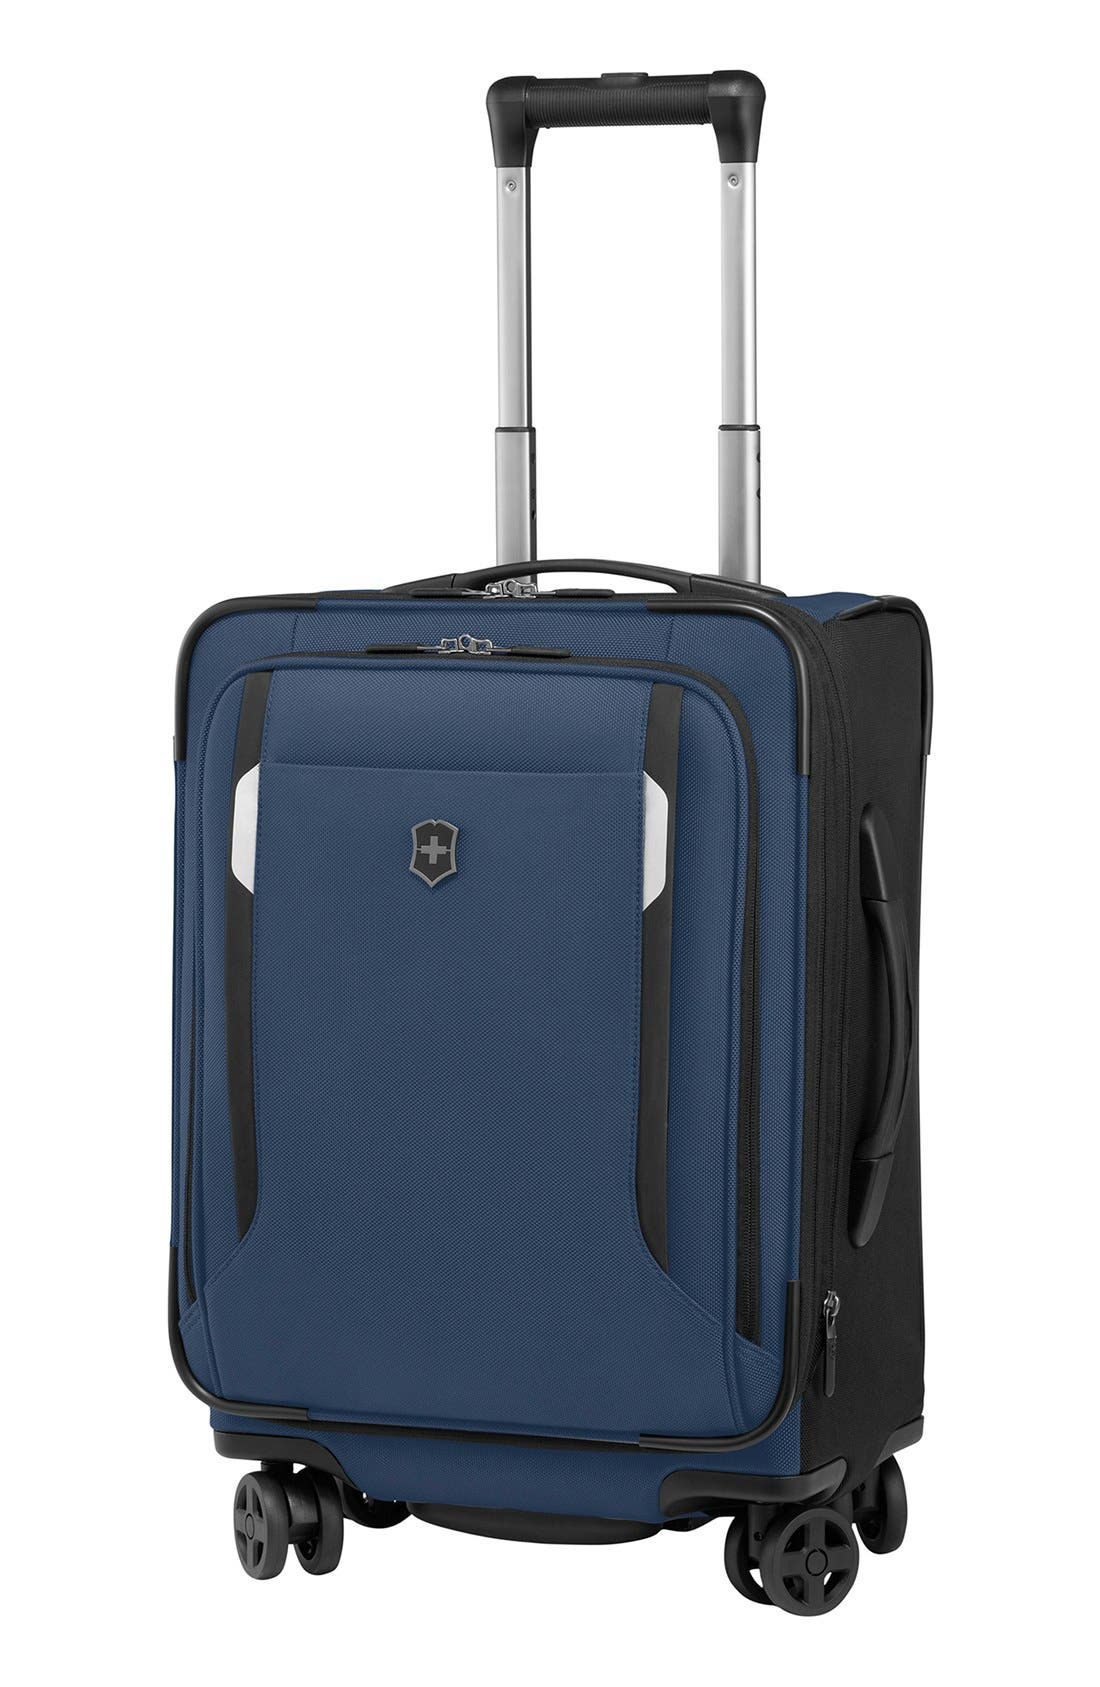 WT 5.0 Dual Caster Wheeled 20-Inch Carry-On,                             Main thumbnail 1, color,                             420